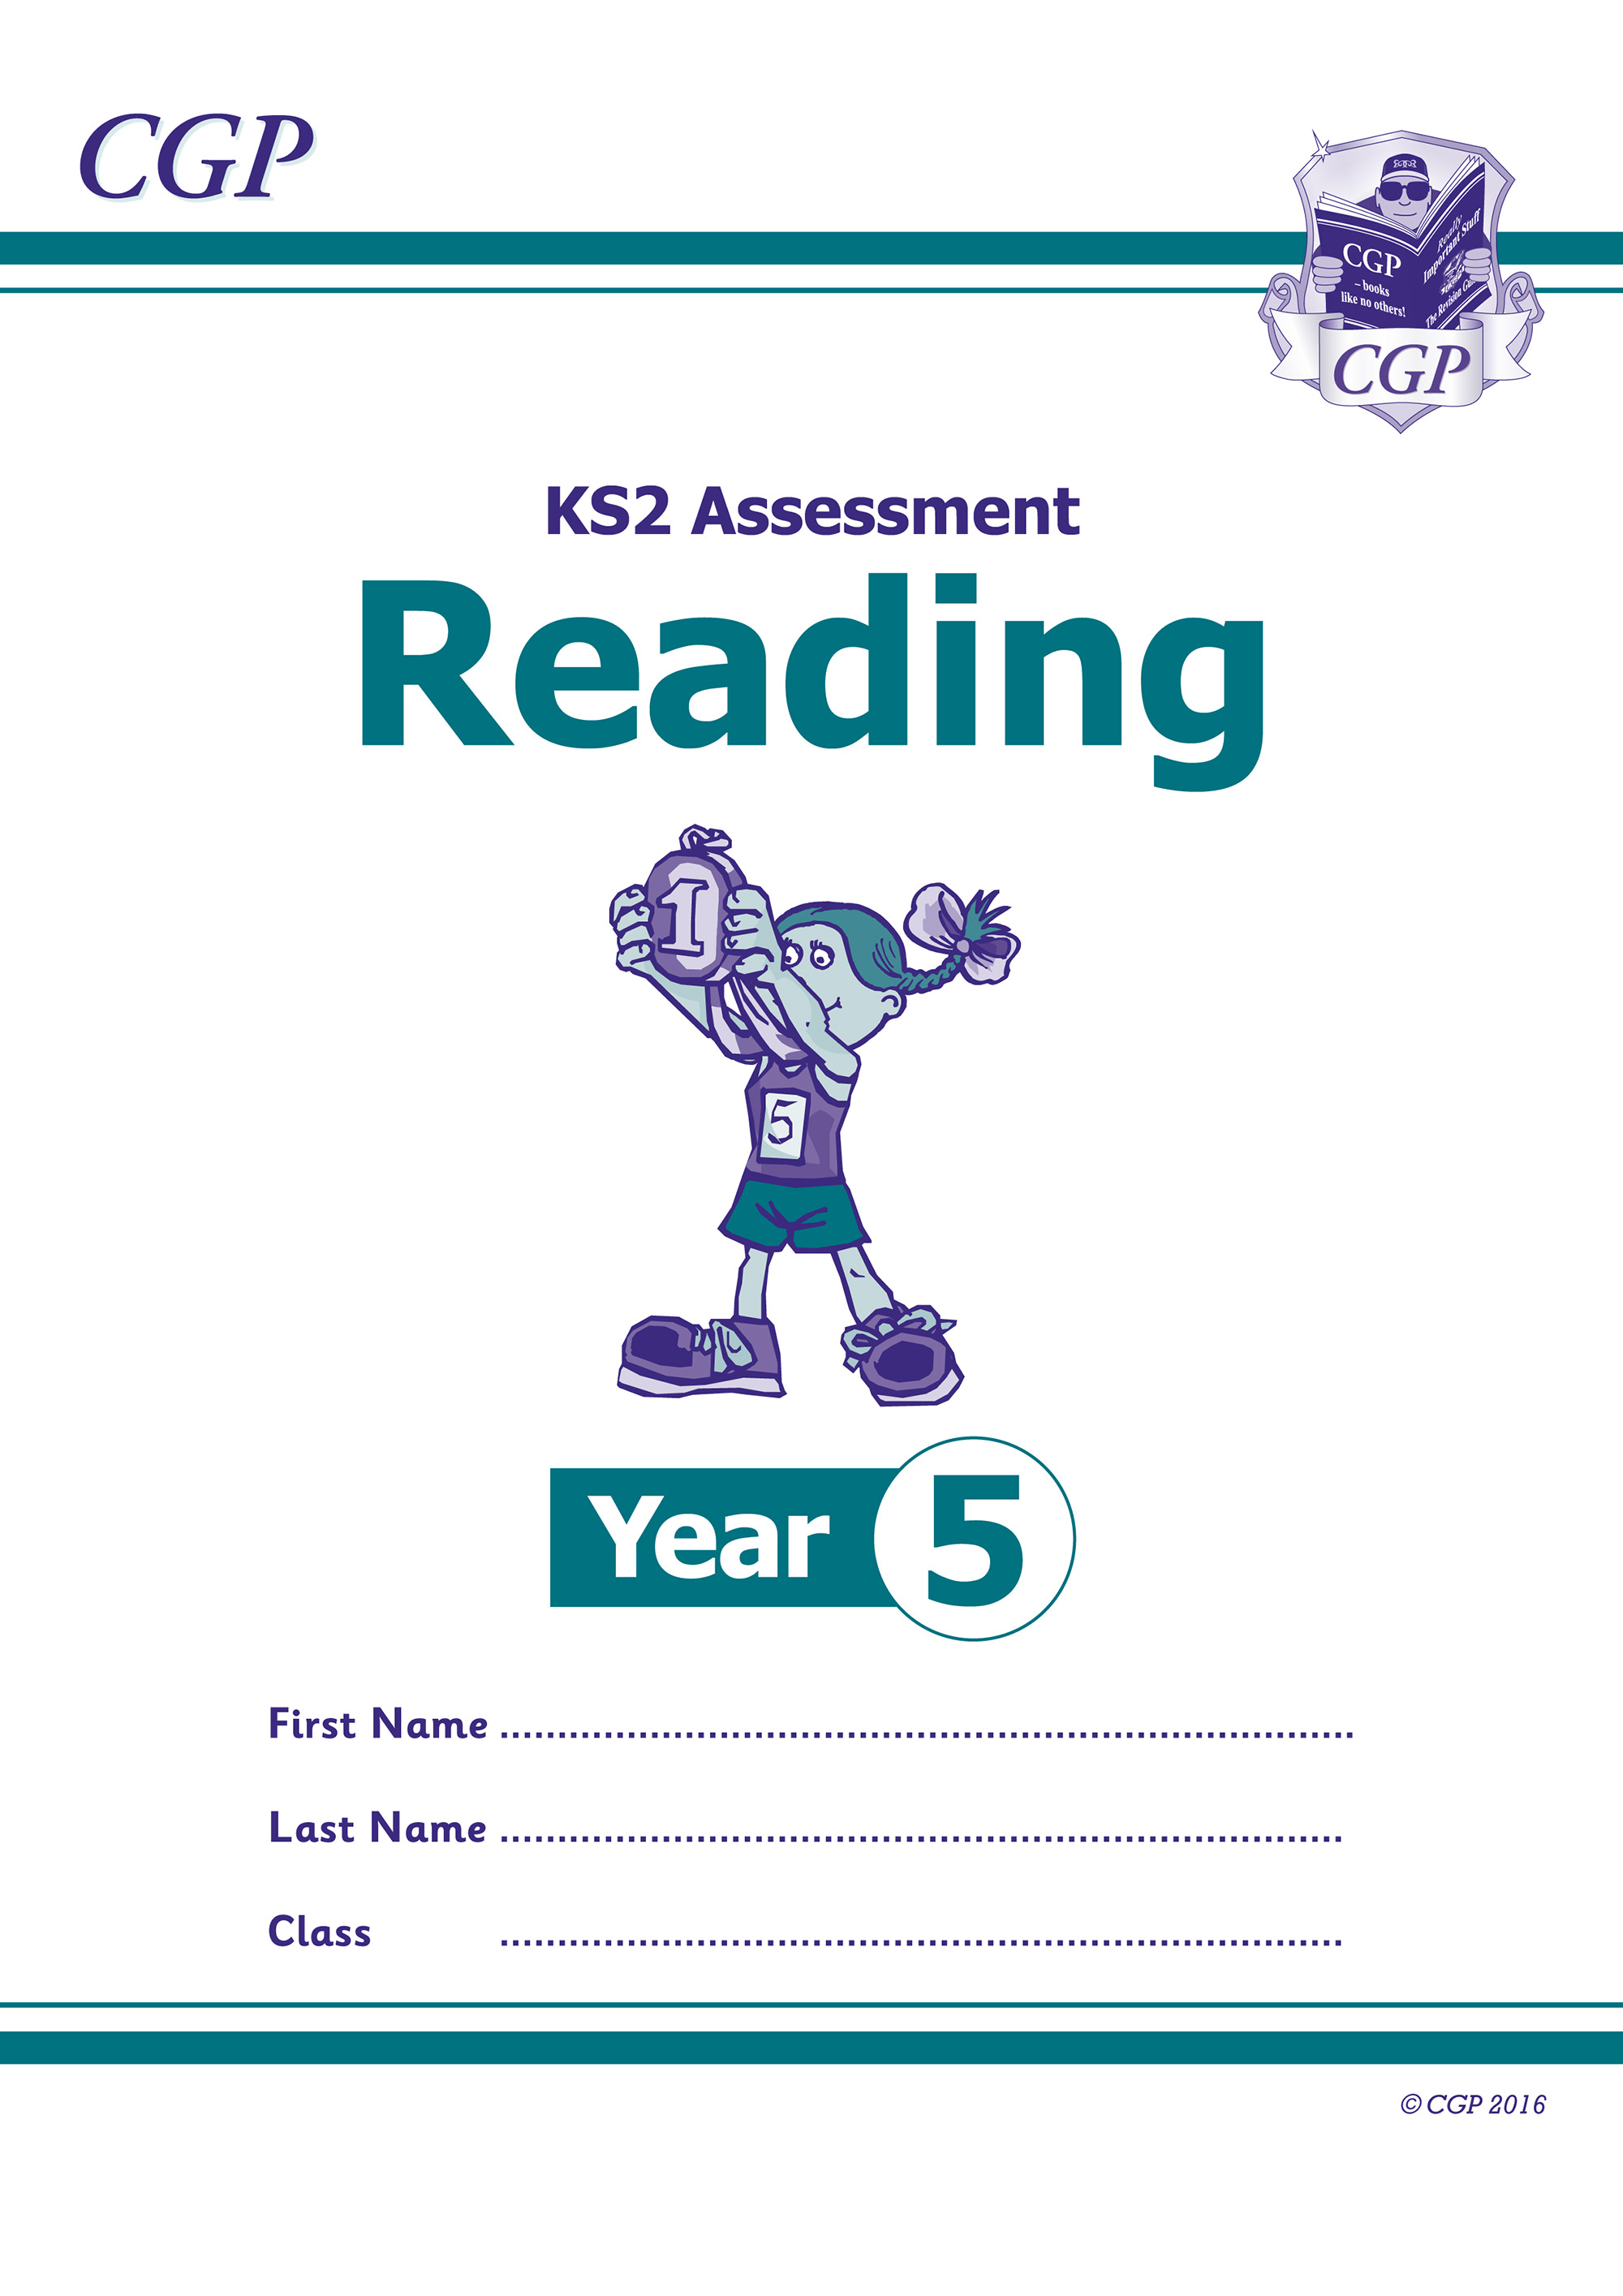 E5RP21 - KS2 Assessment: Reading - Year 5 Test